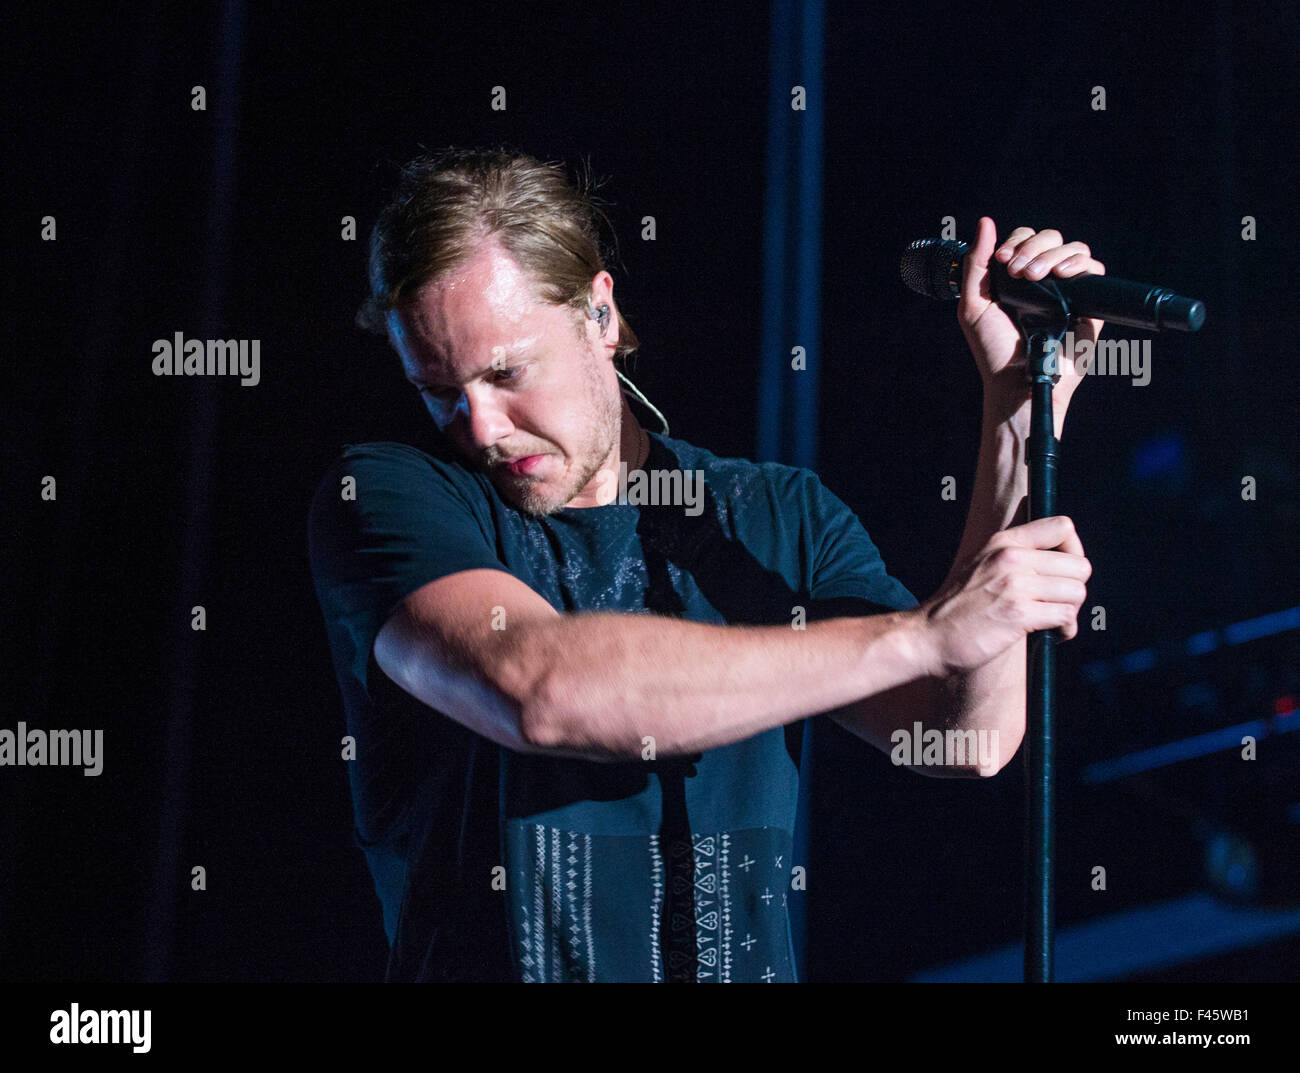 Dan Reynolds of Imagine Dragons performs on stage during Life Is Beautiful Festival in Las Vegas - Stock Image